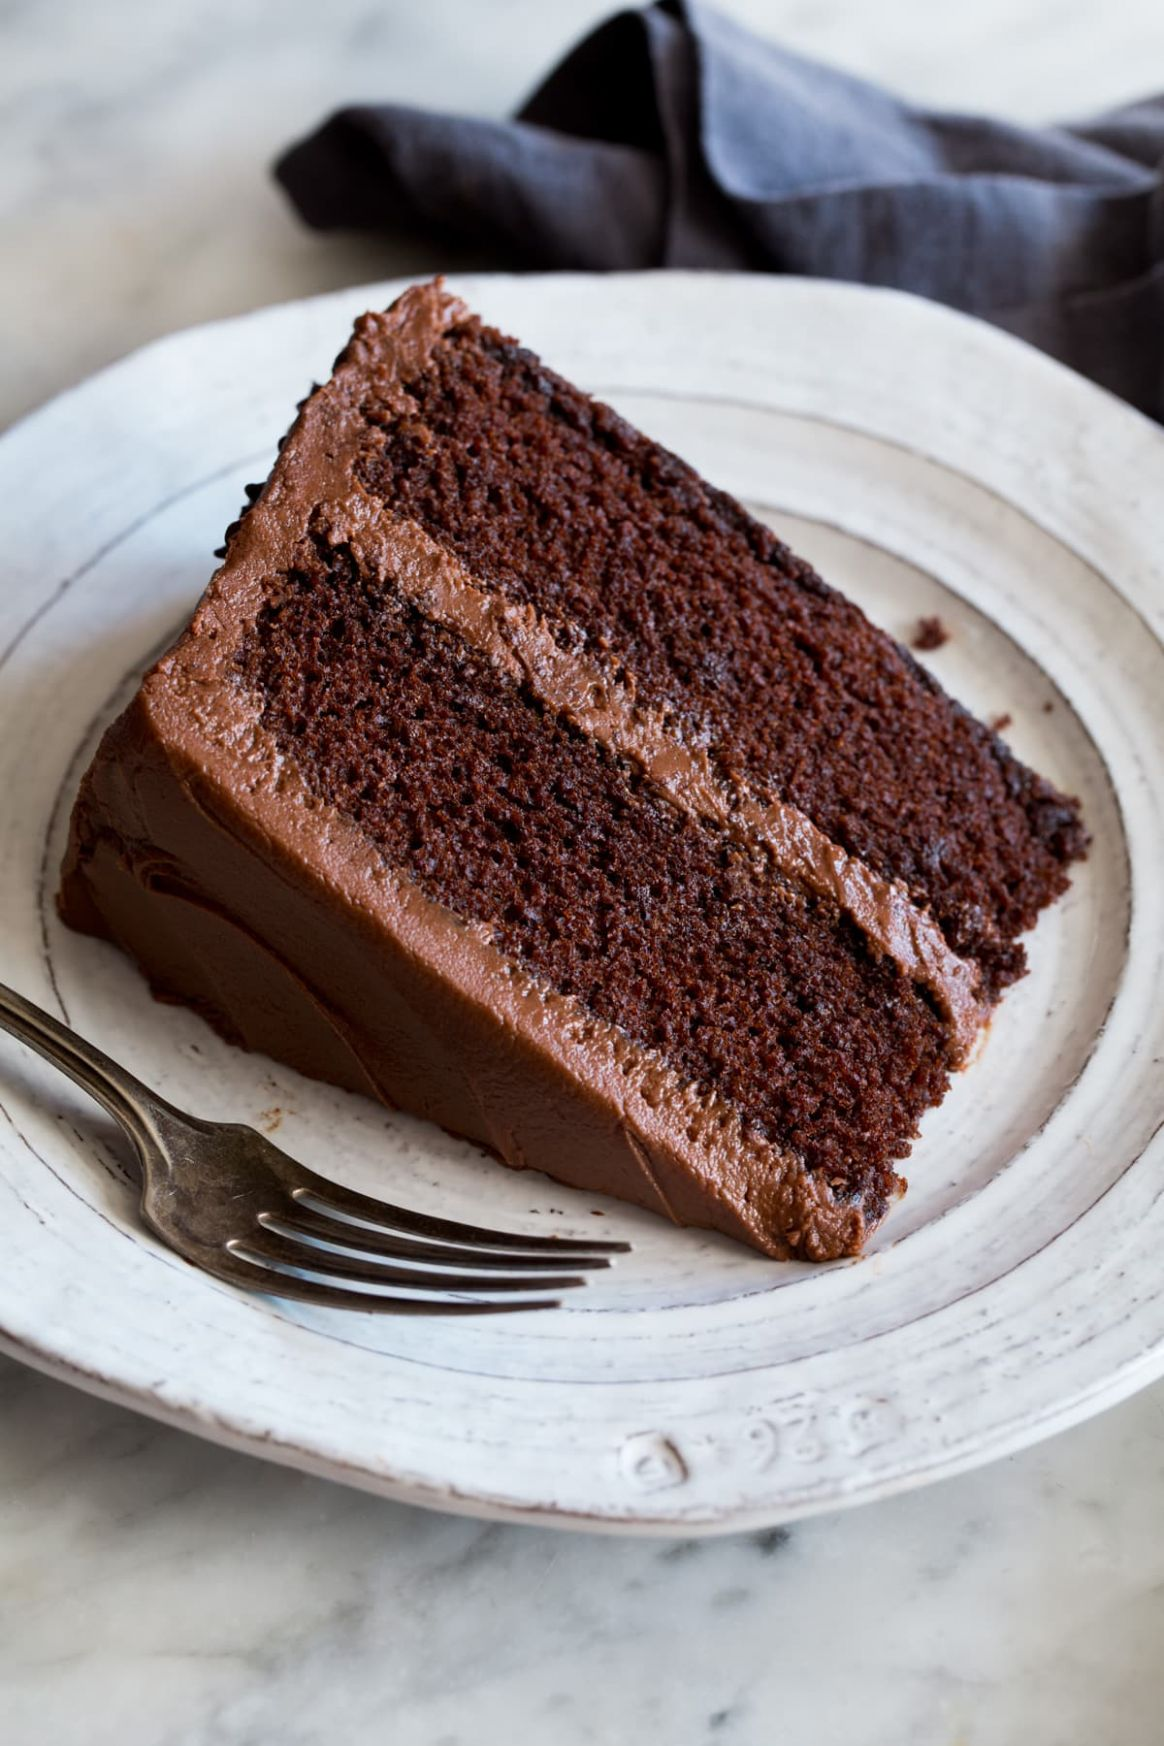 Chocolate Cake with Chocolate Buttercream Frosting - Recipes Chocolate Cake Homemade